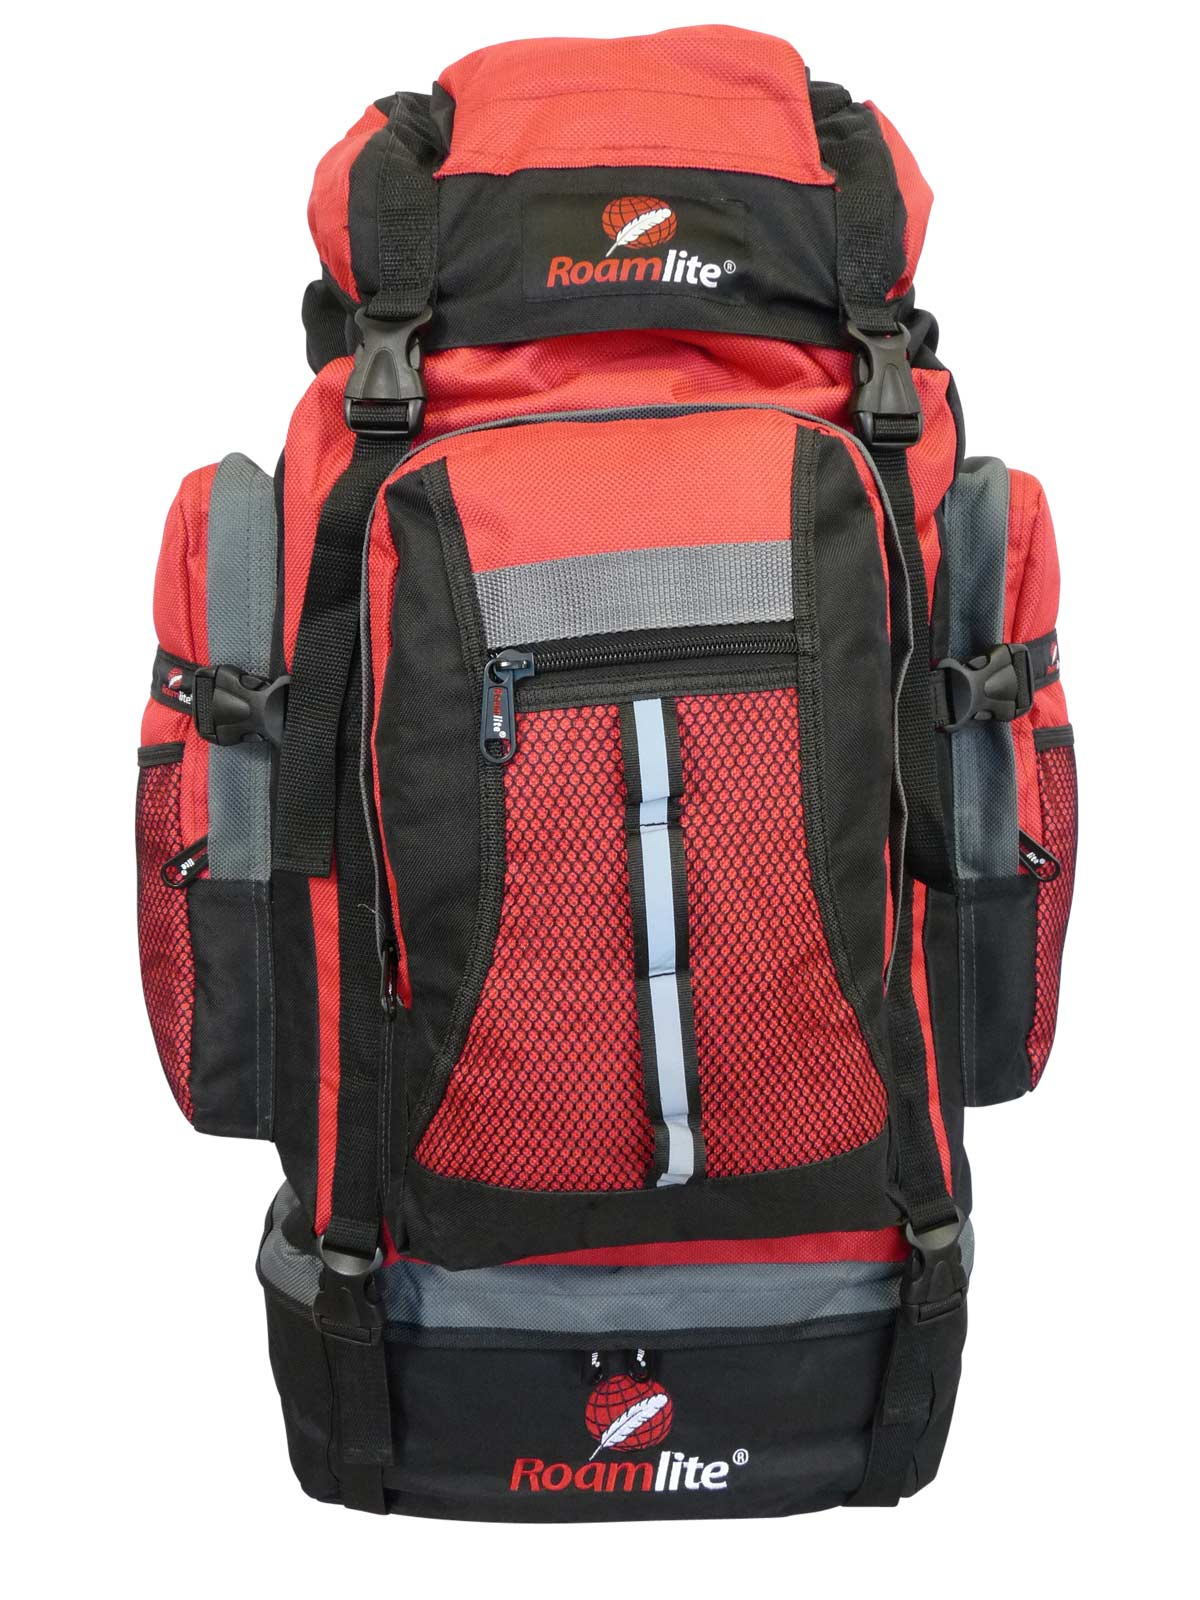 Festival Camping Backpack Bag RL02KRf